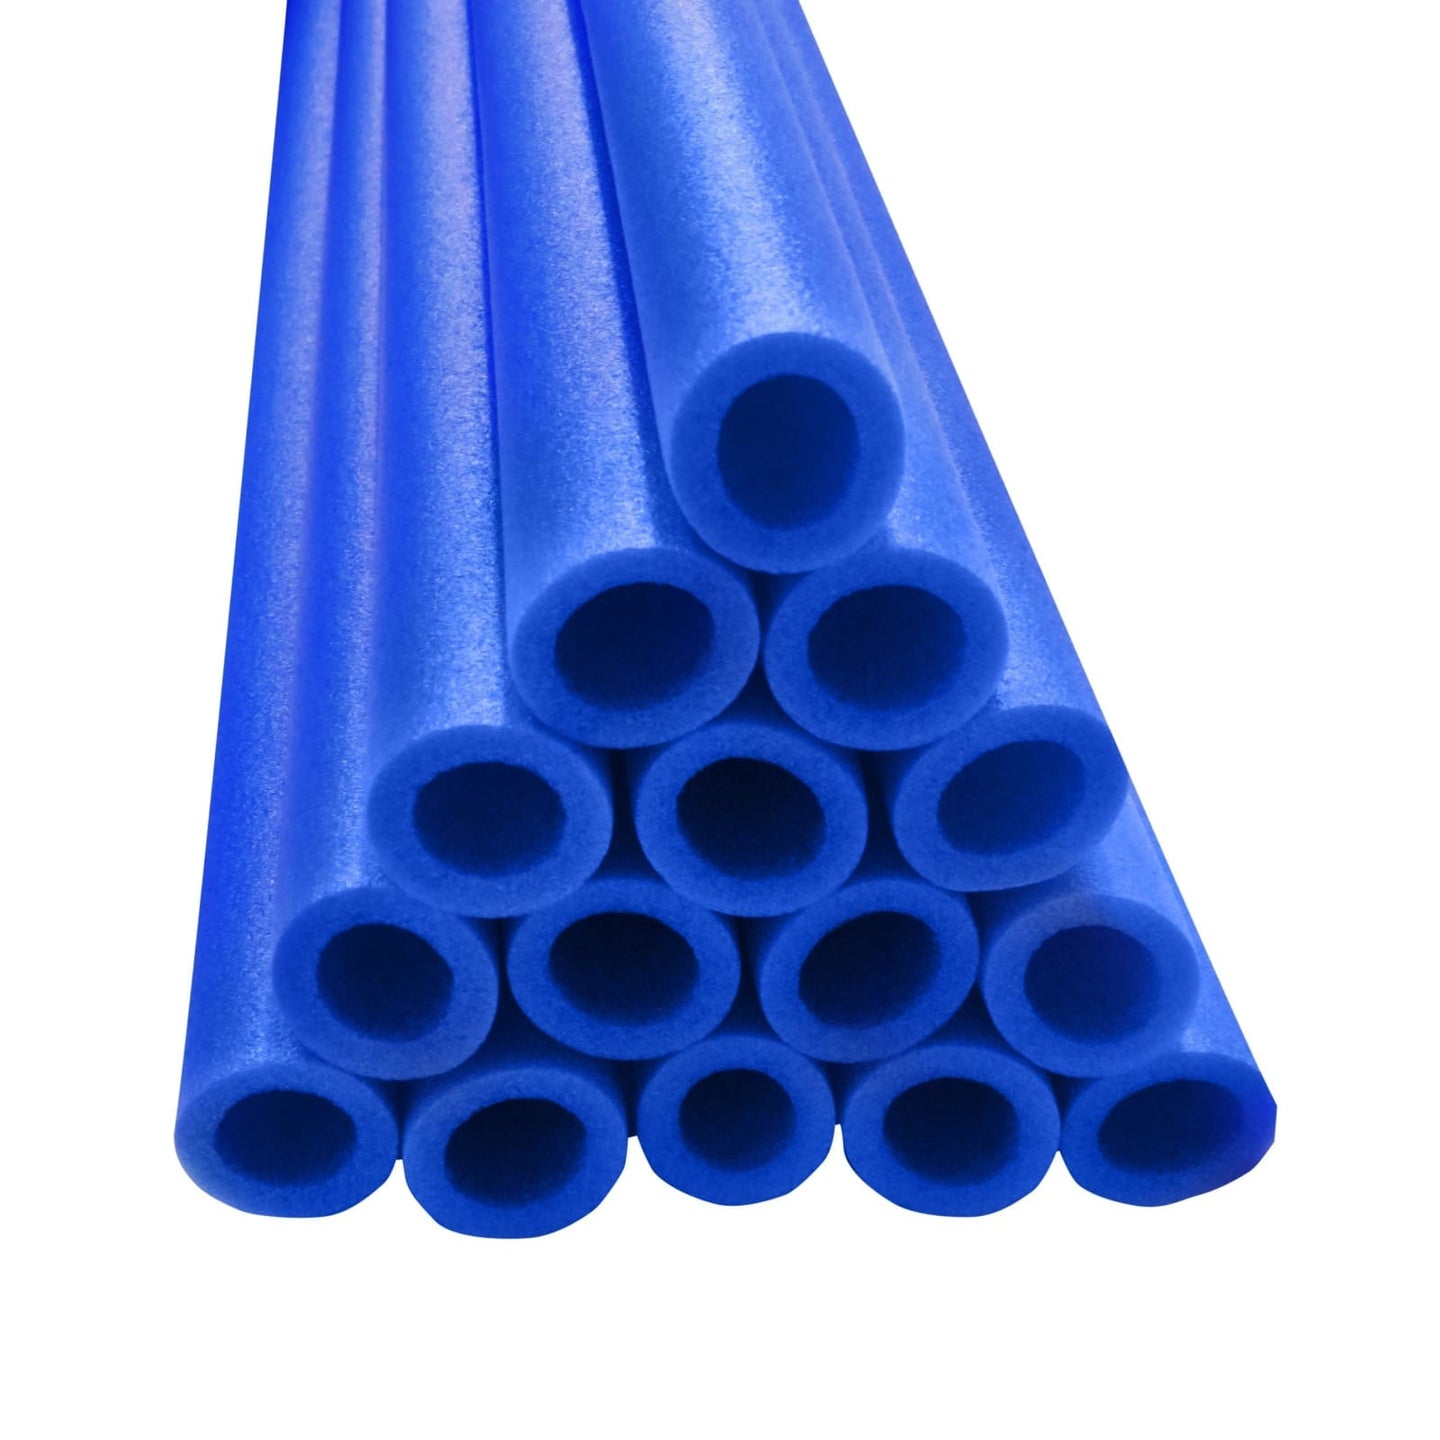 Upper Bounce 44 Inch Trampoline Pole Foam Sleeves Fits For 1.75 Diameter Pole - Set Of 16 -Blue - Trampoline Replacements